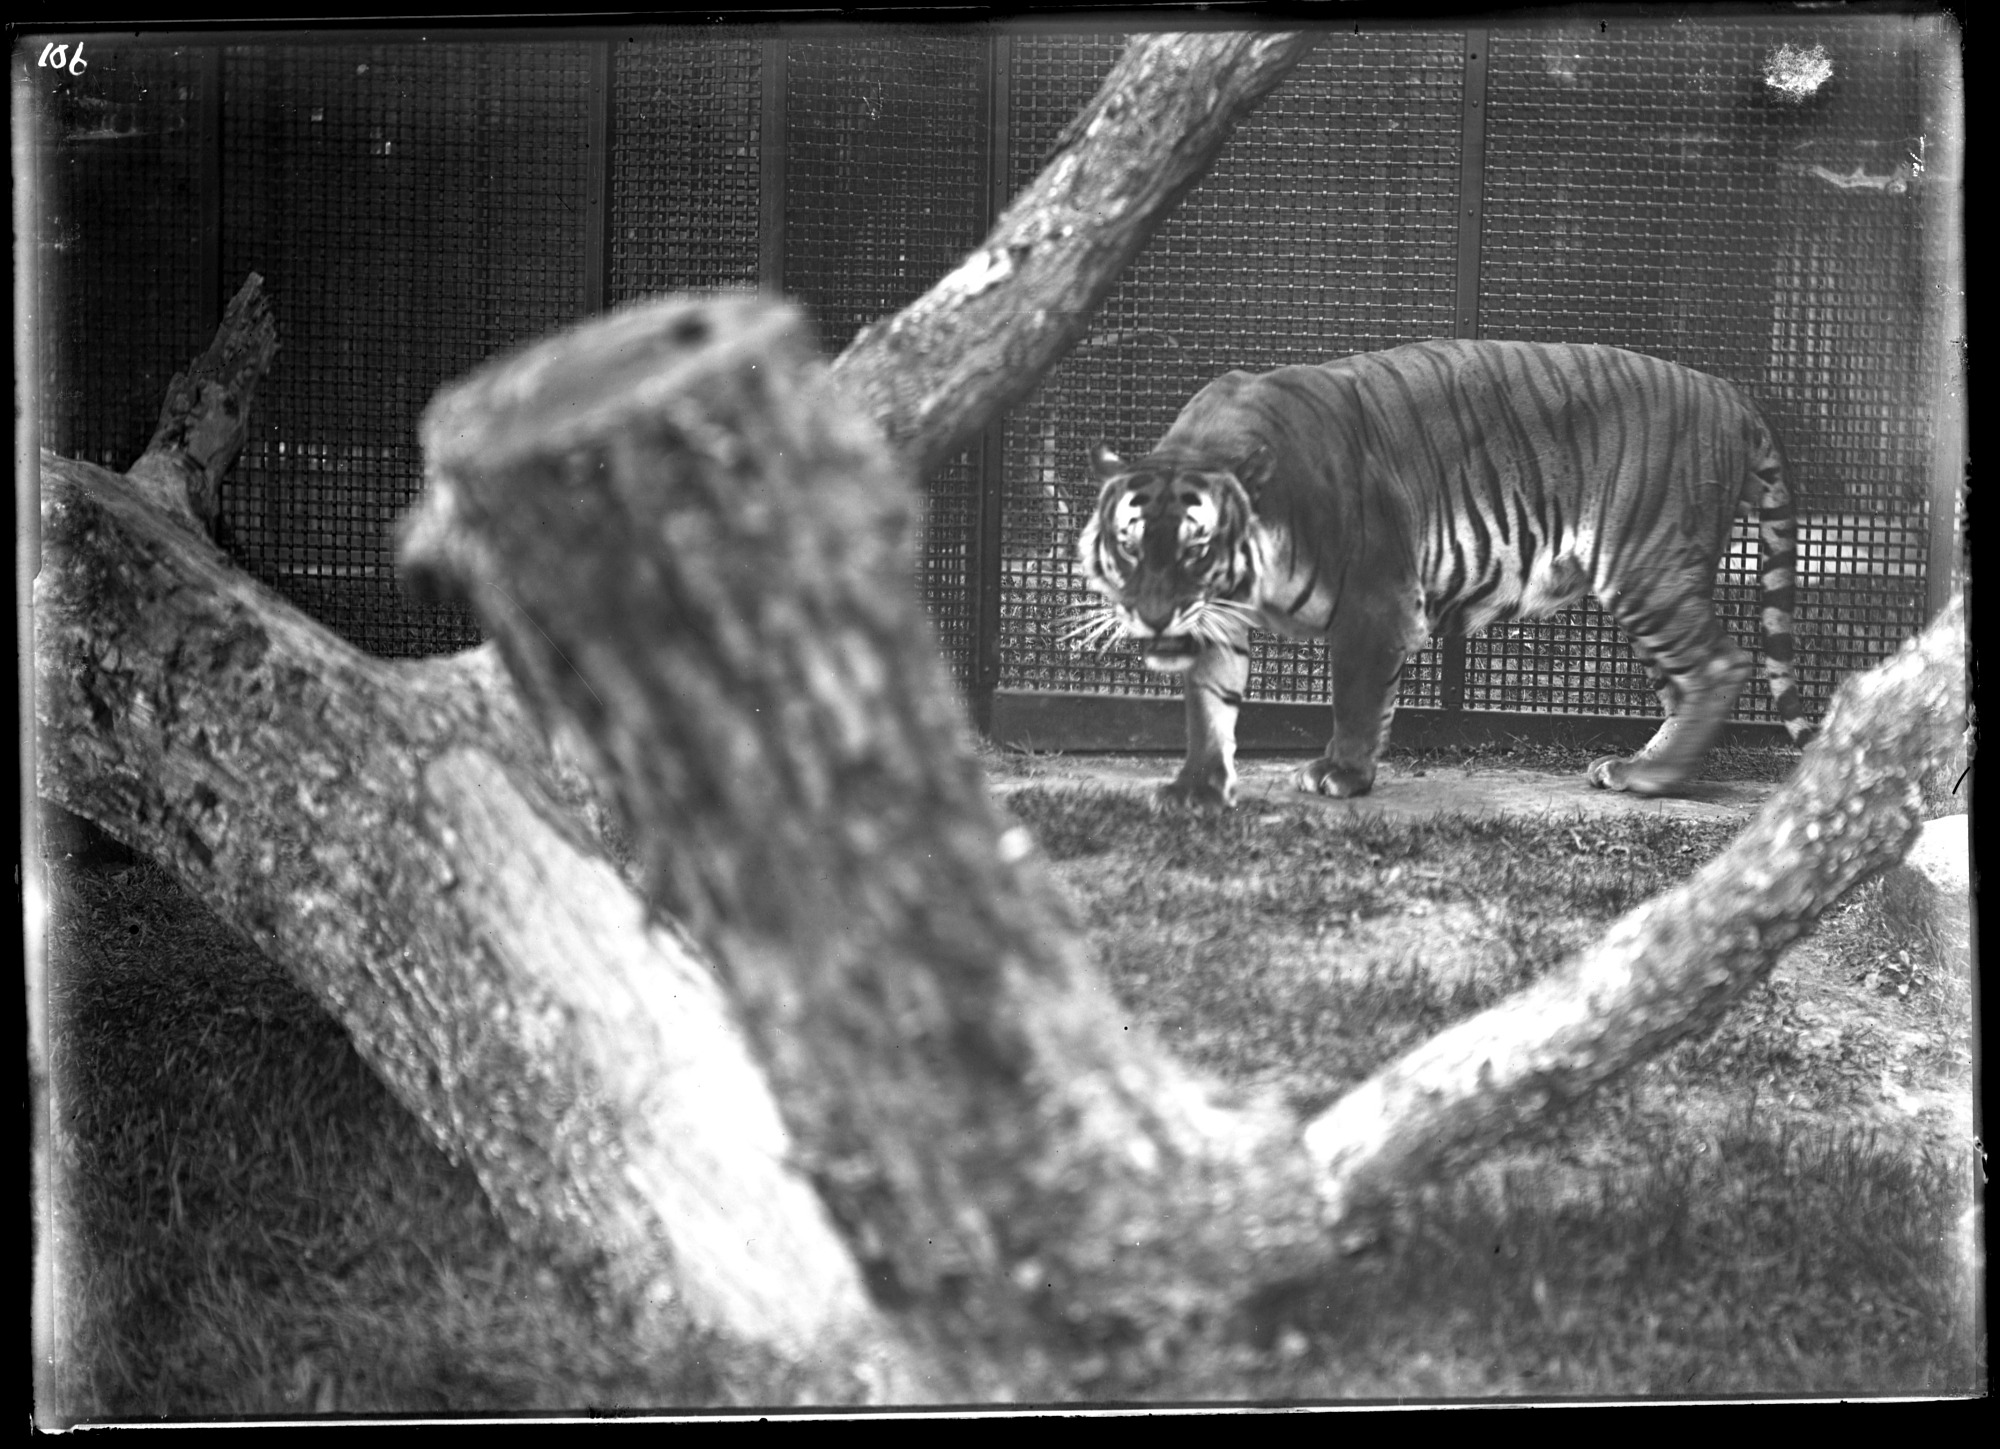 Bengal Tiger, Male, 1896, Smithsonian Institution Archives, SIA Acc. 14-167 [NZP-0106].